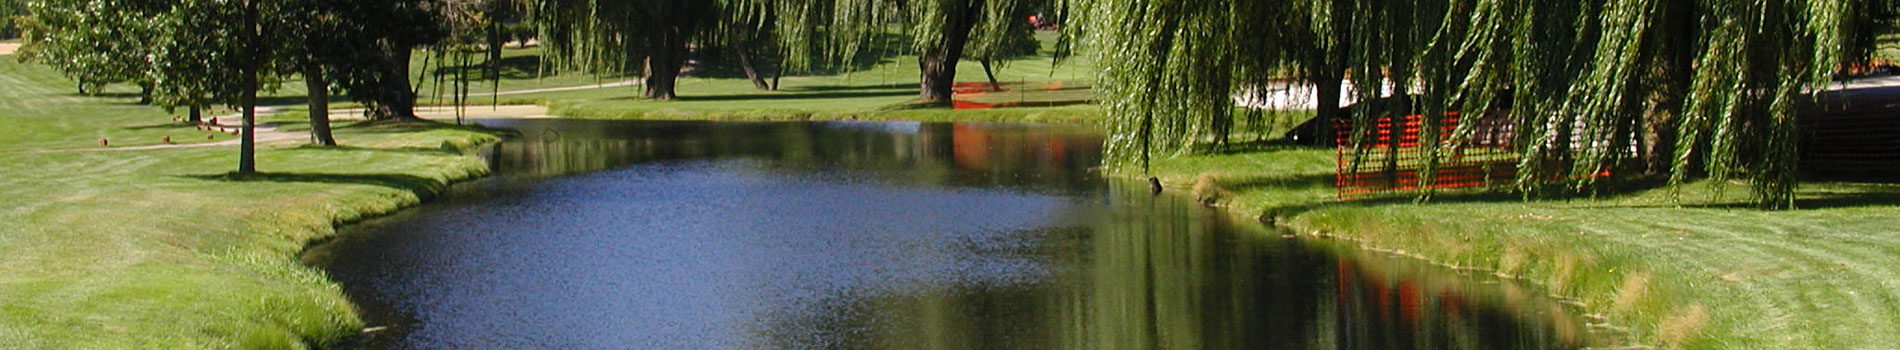 Golf Course Pond Cleaning